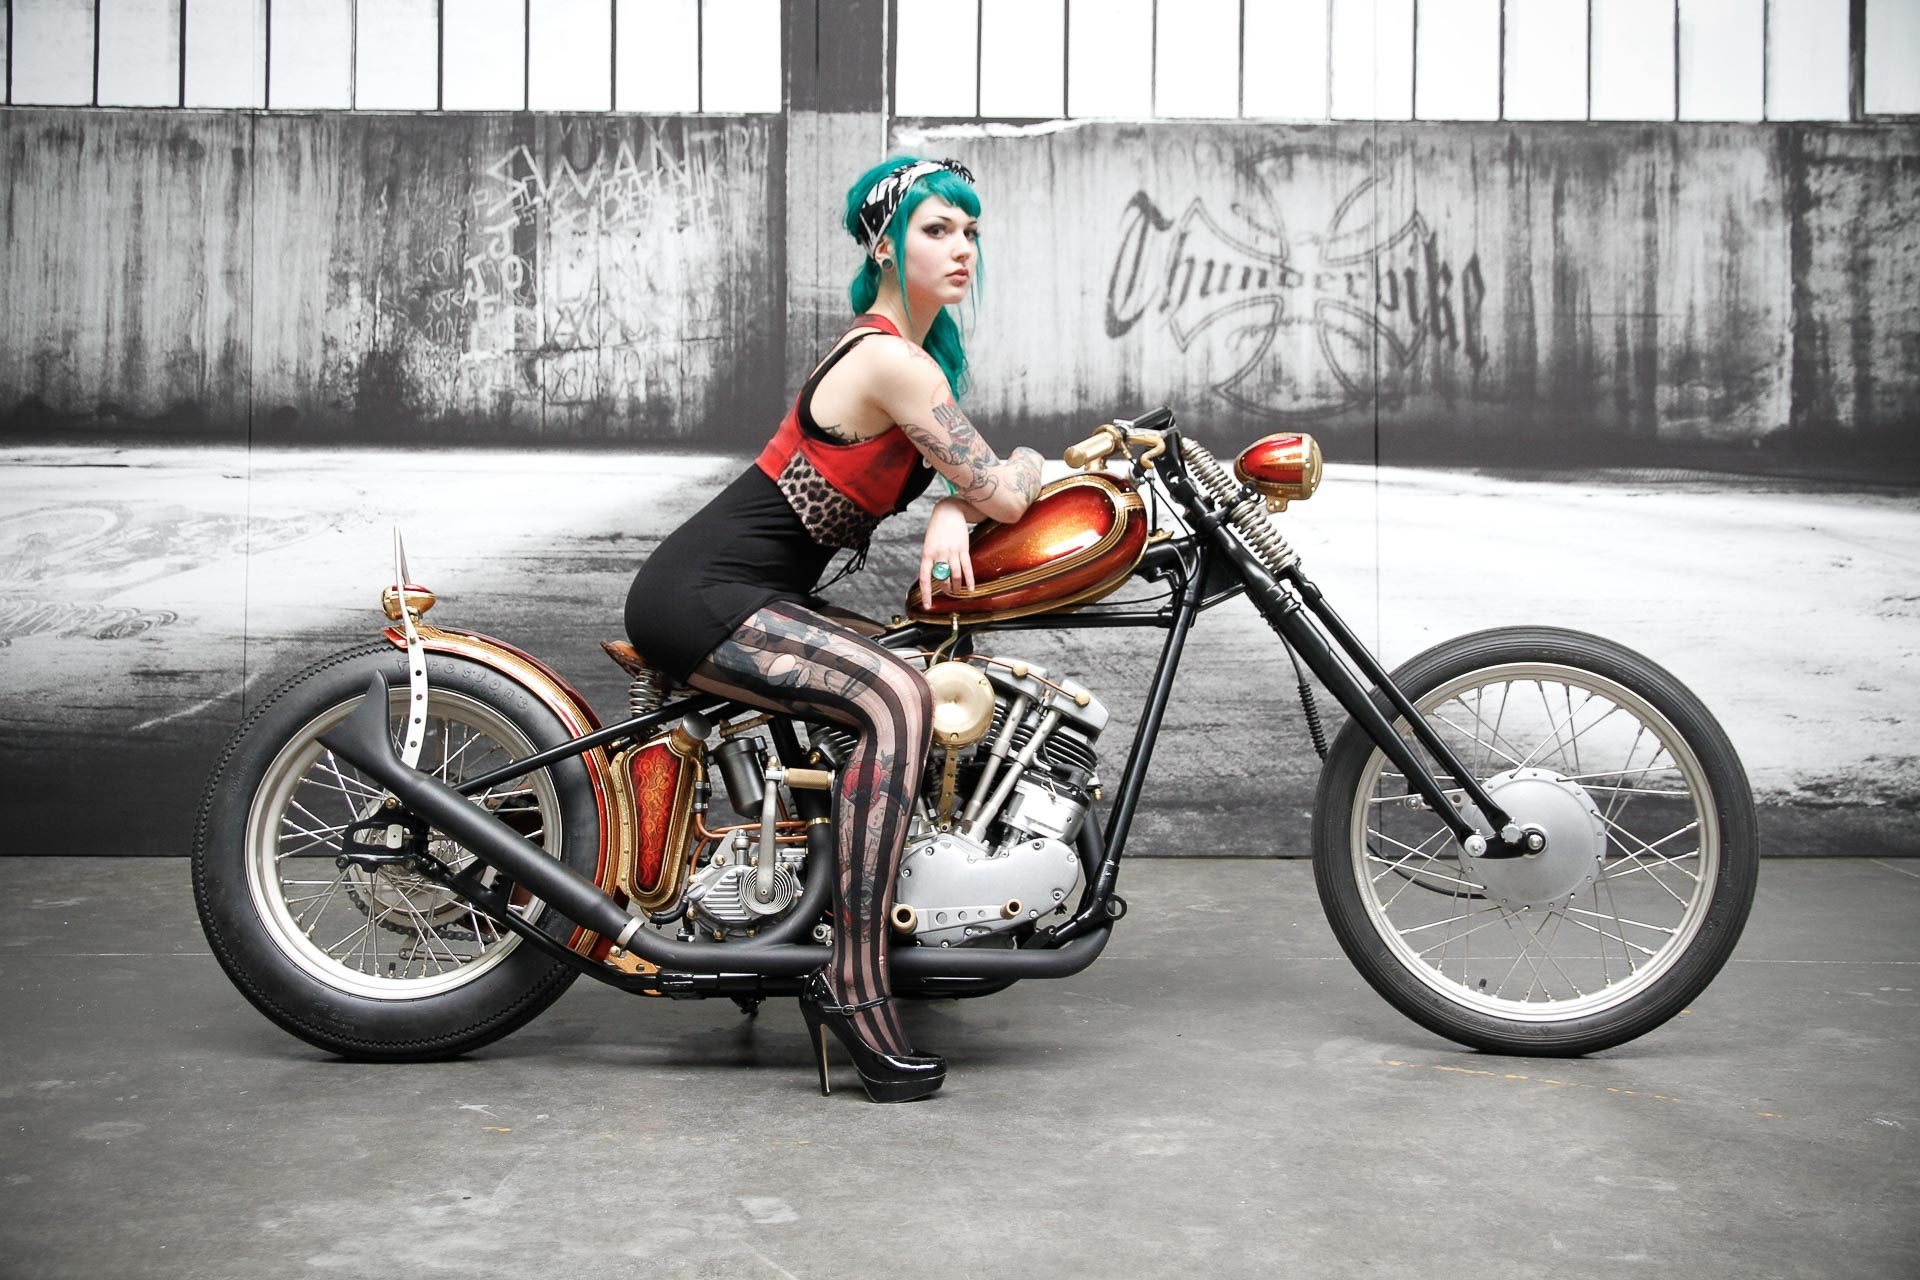 Naked Girls On Motorcycles